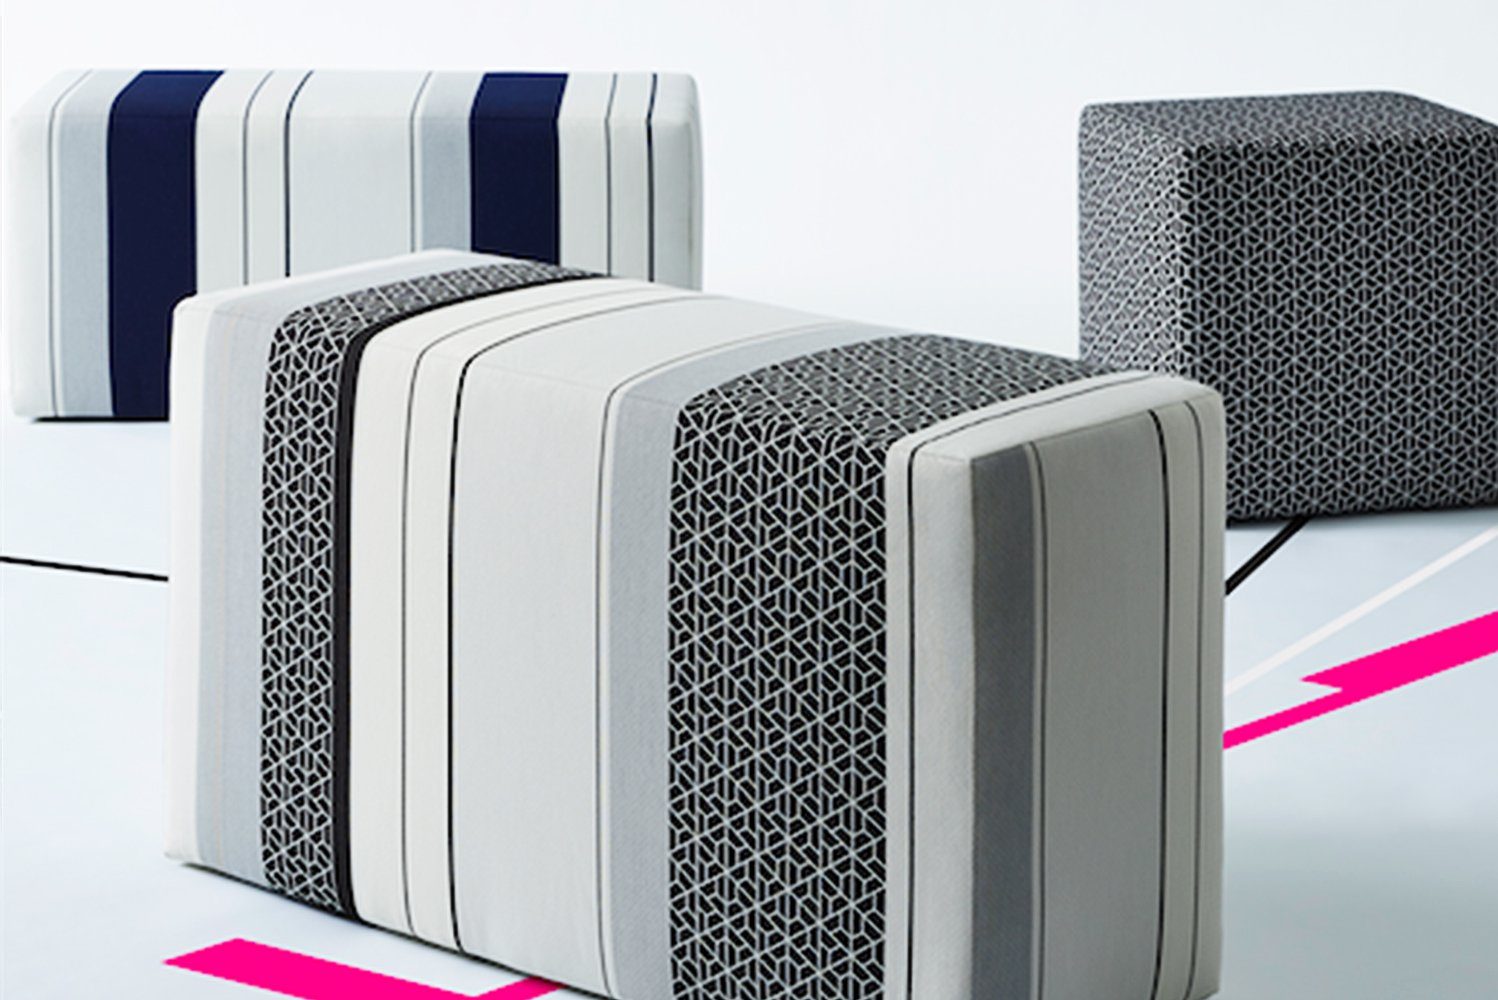 Introducing a new fabric collection marking the first collaboration between Gensler and Carnegie.